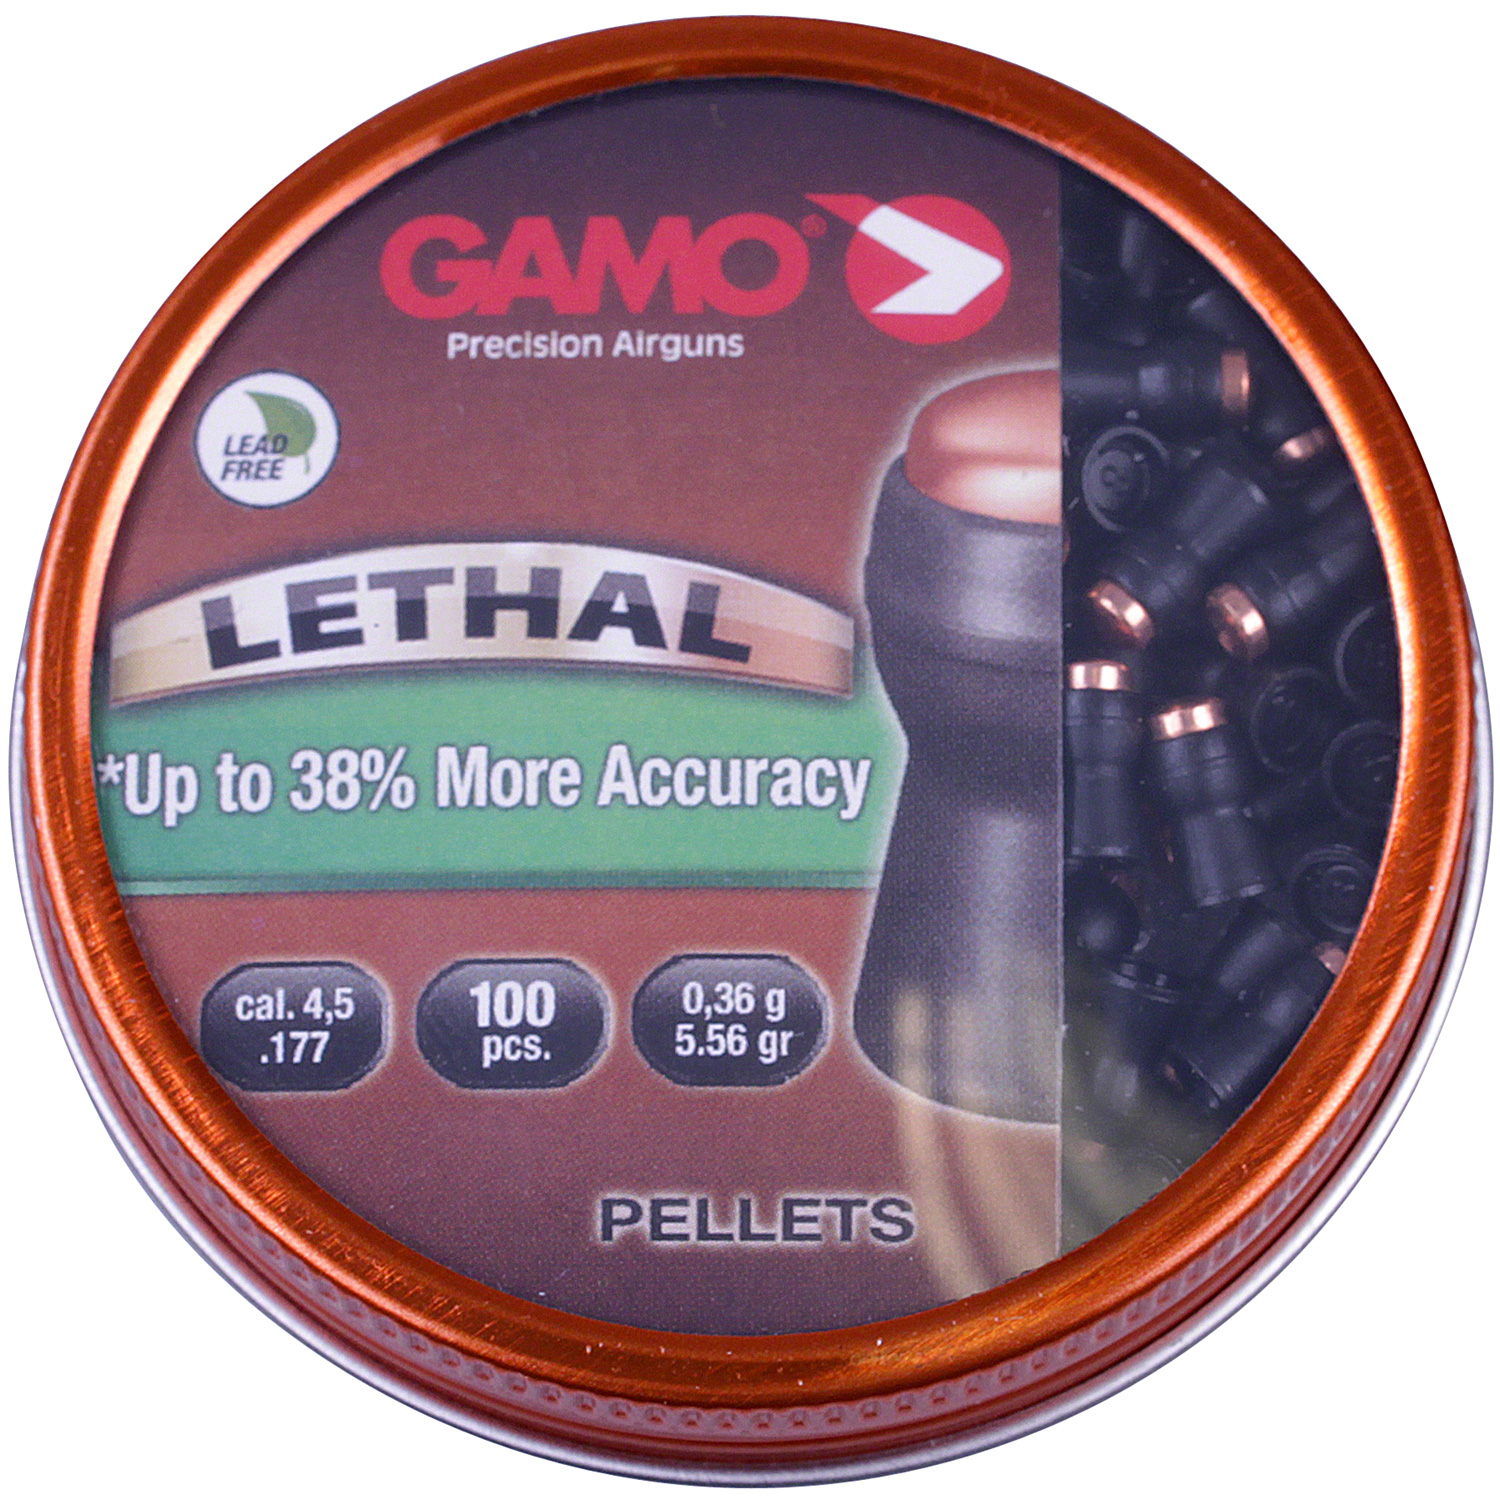 Pellet Kaminofen Verbrauch Pro Tag Gamo Lethal Pellets 177 Non Lead Airgun Air Riflle